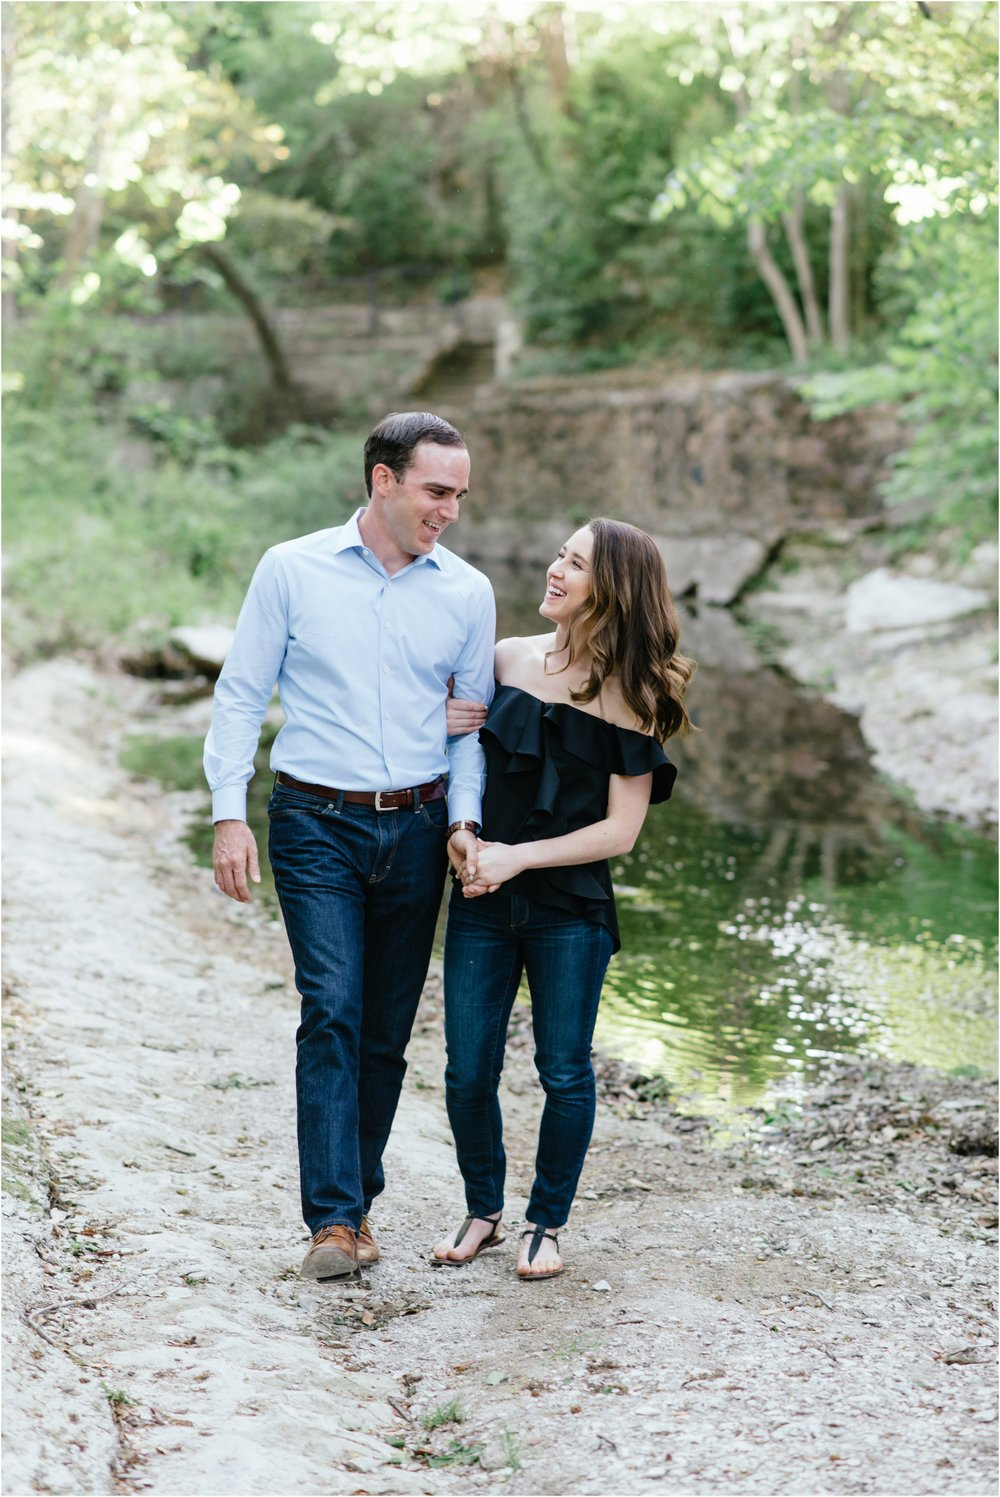 dallasweddingphotographer_texasweddingphotographer_texasweddingphotographers_dallasweddingphotographer_mattandjulieweddings_0798.jpg